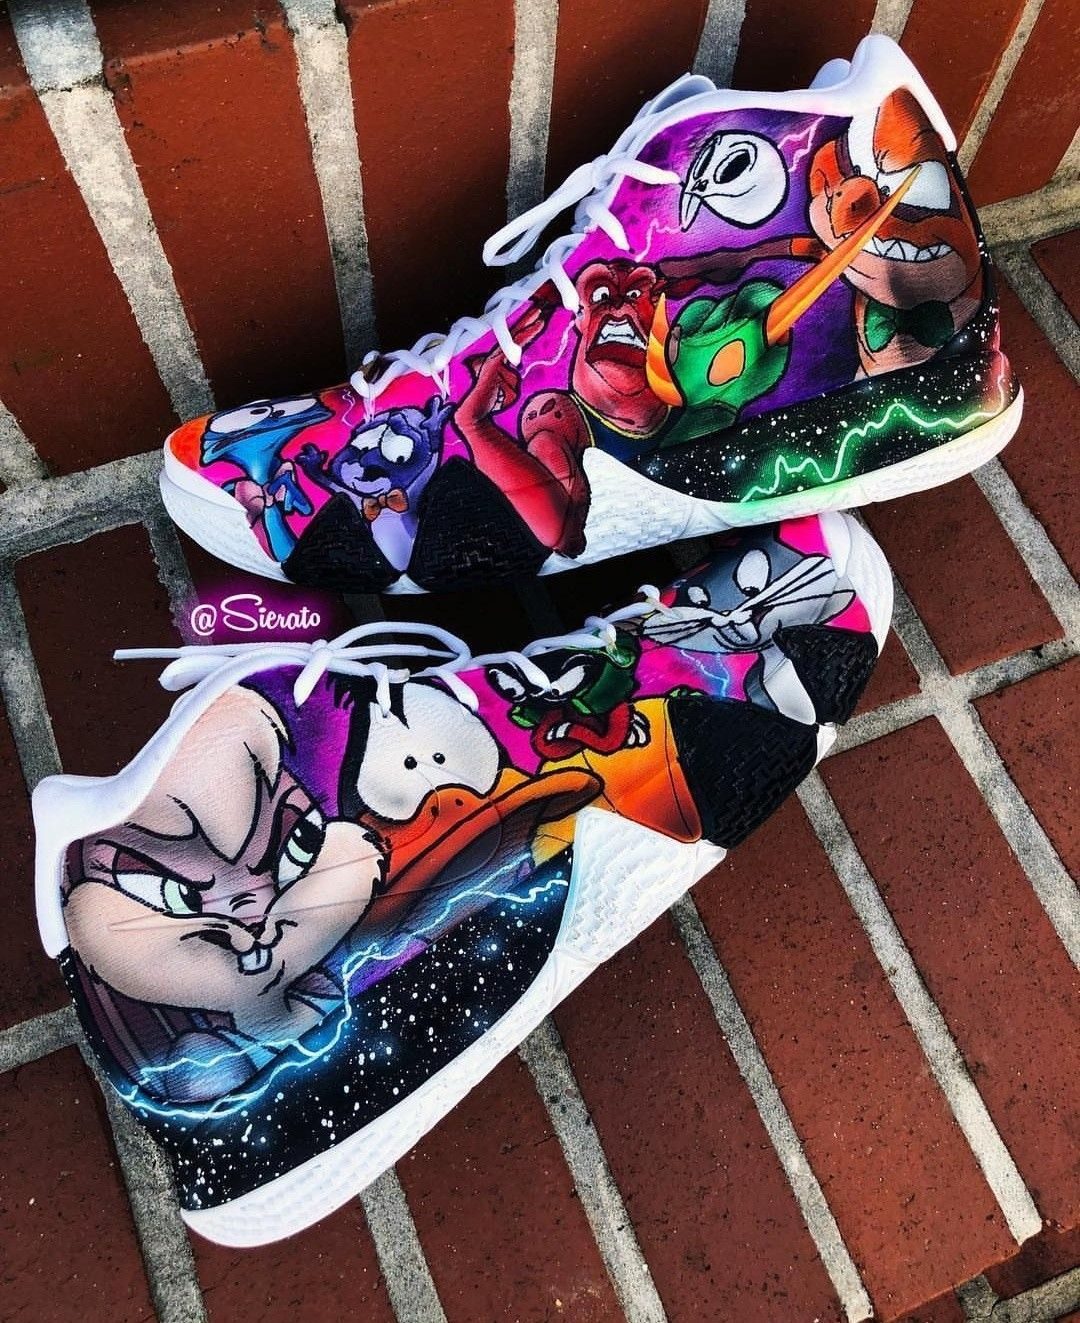 kyrie 4 shoes customize